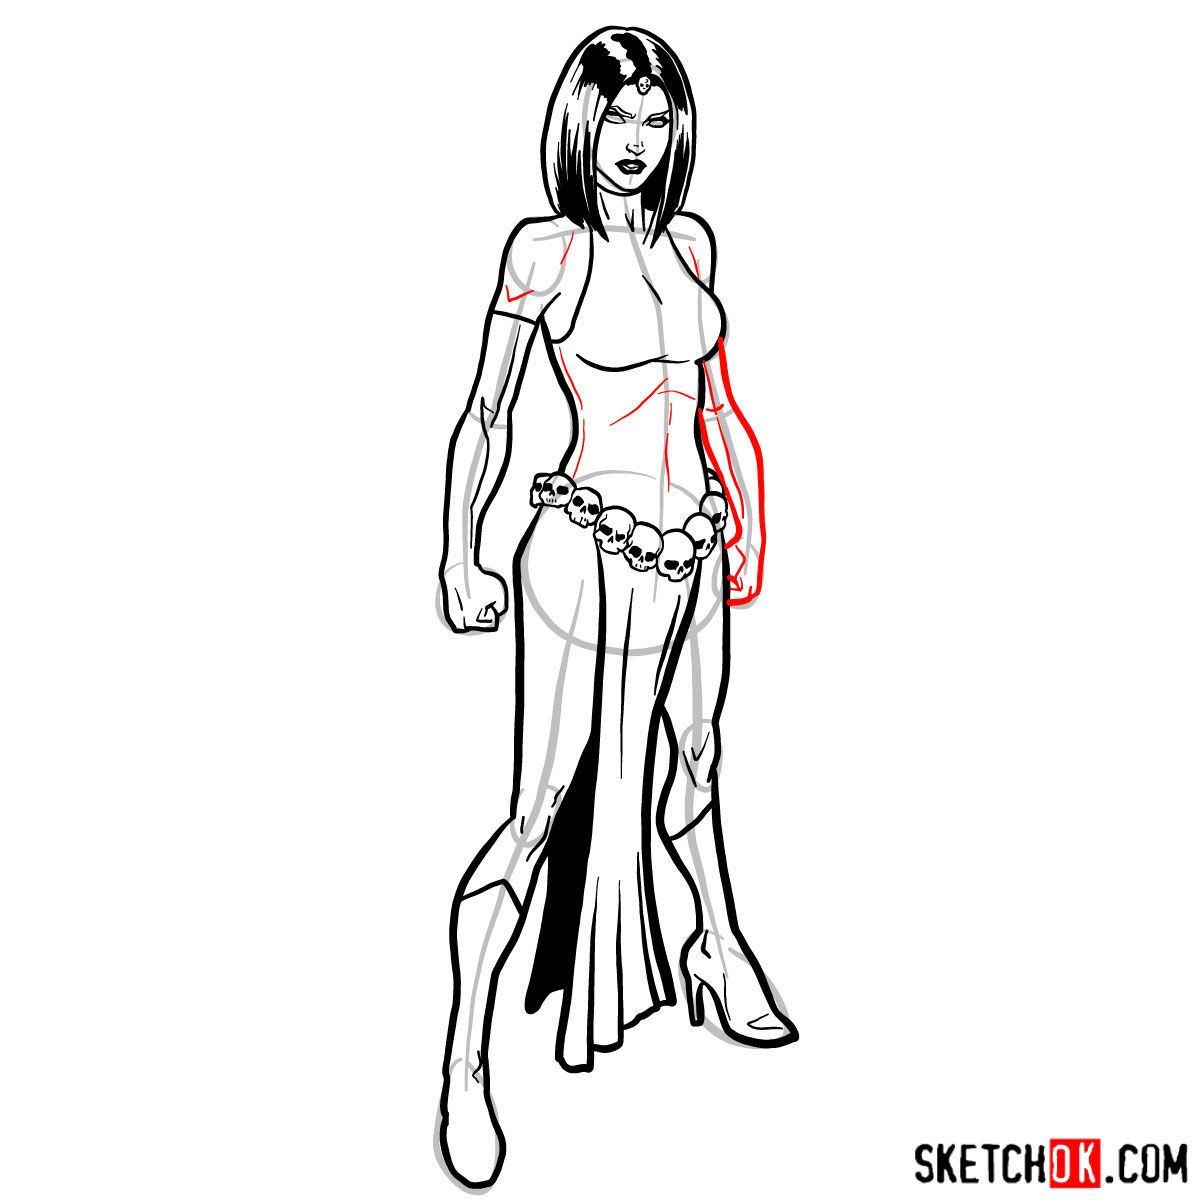 How to draw Mystique from X-Men - step 13